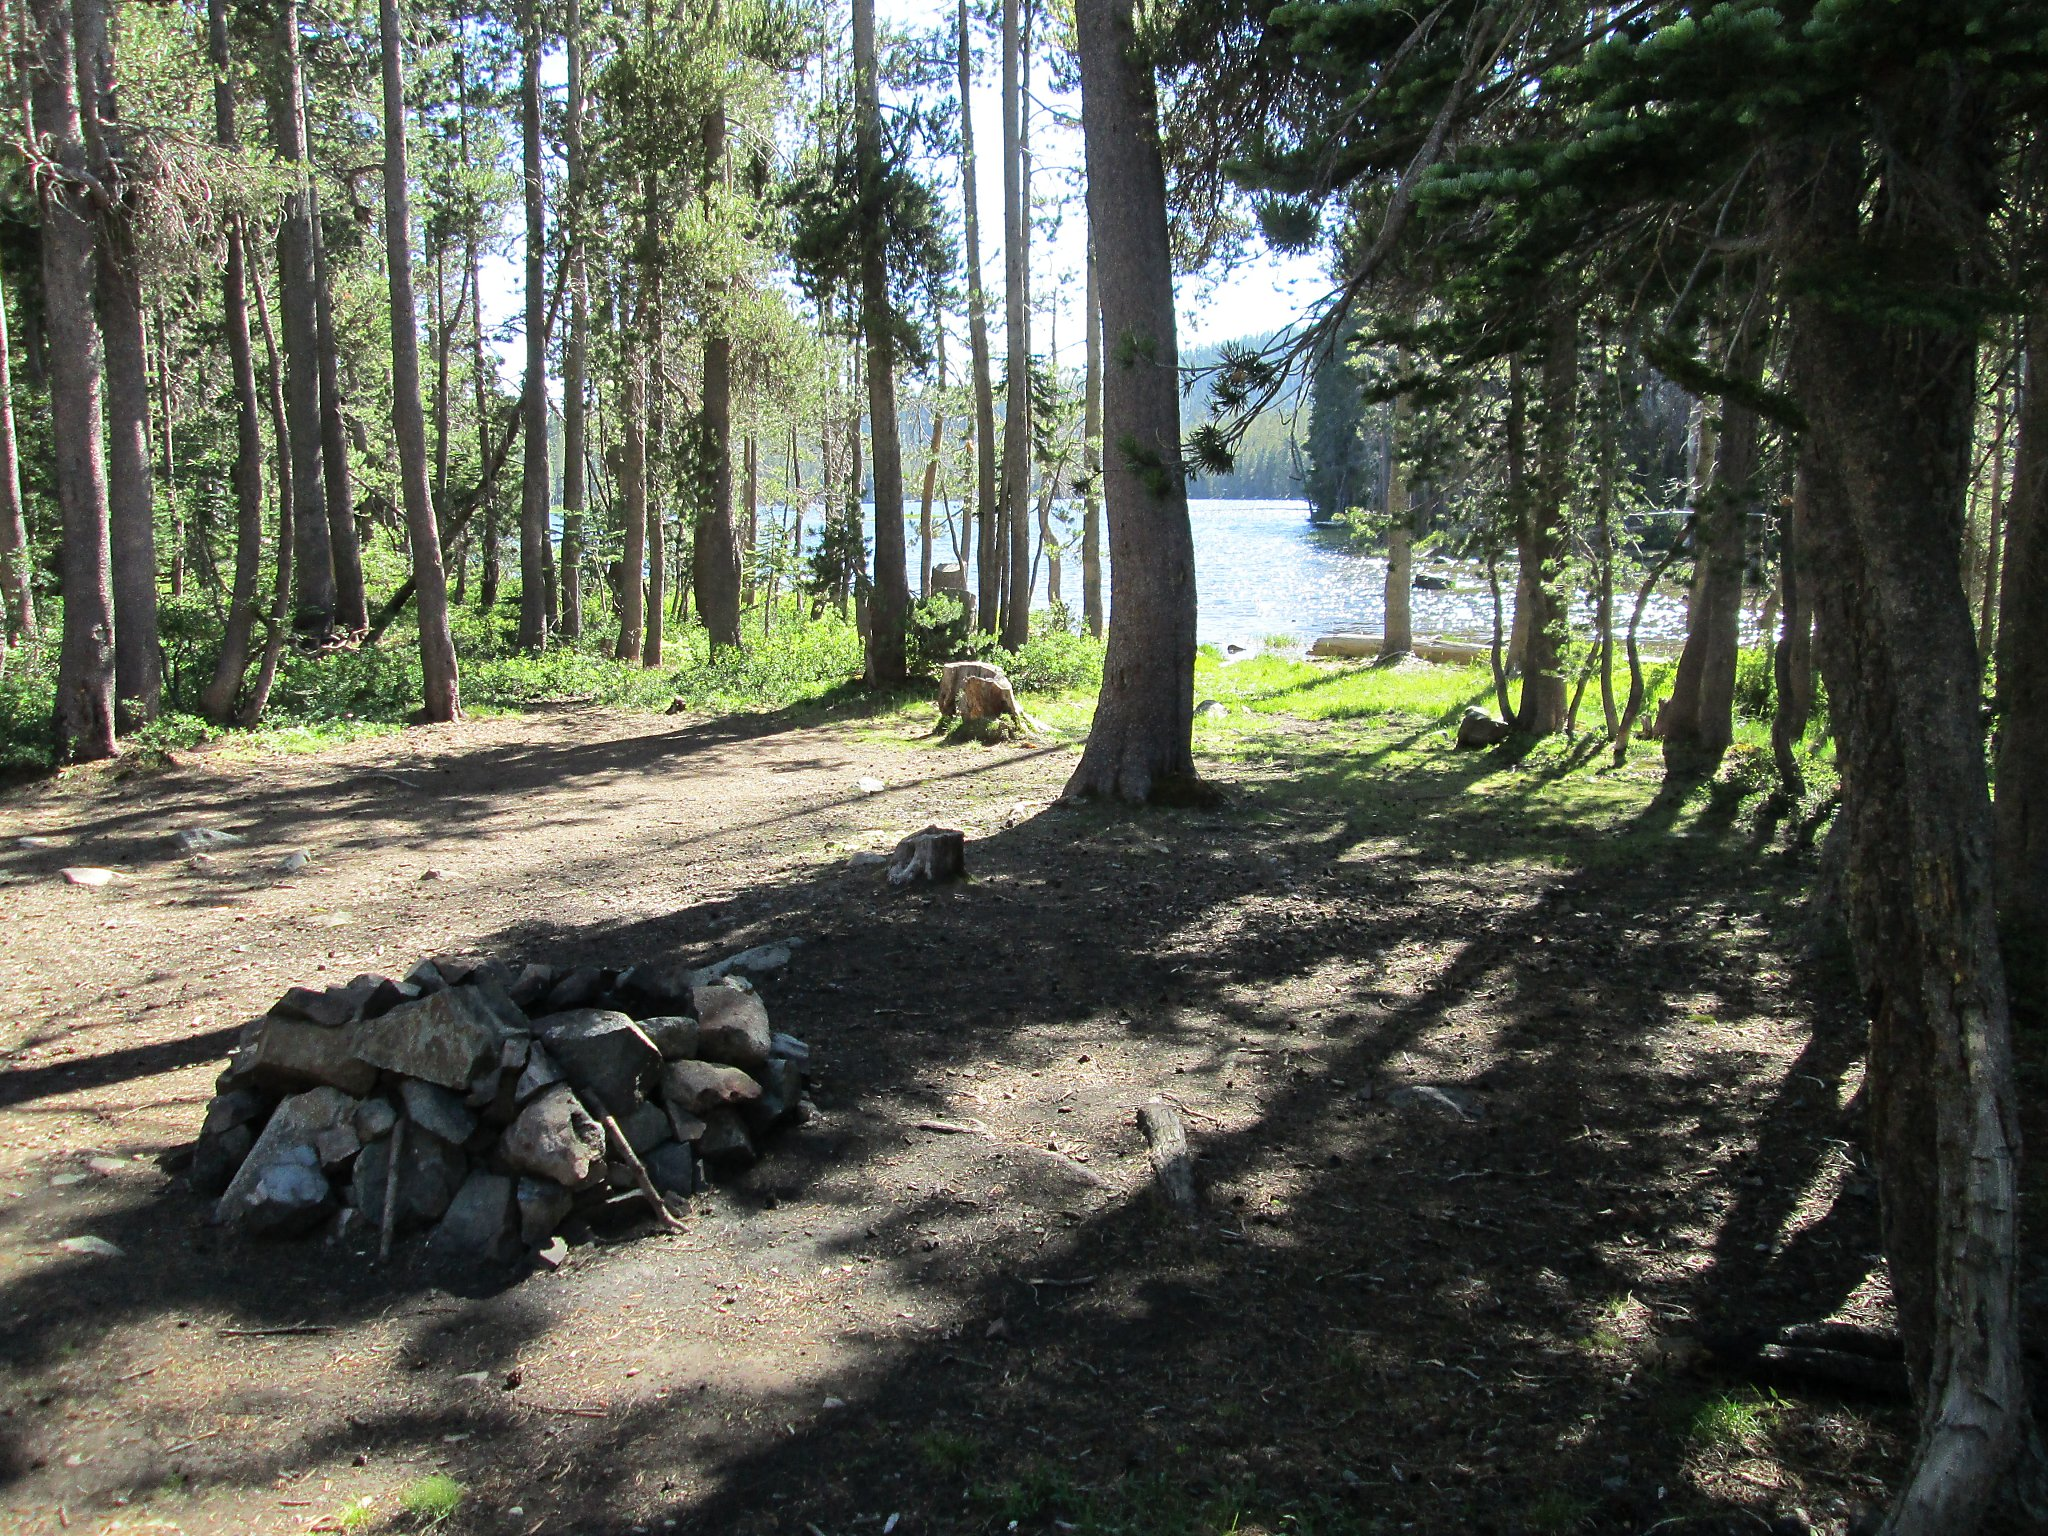 willing to drive? july 4 camping options are still out there - sfgate